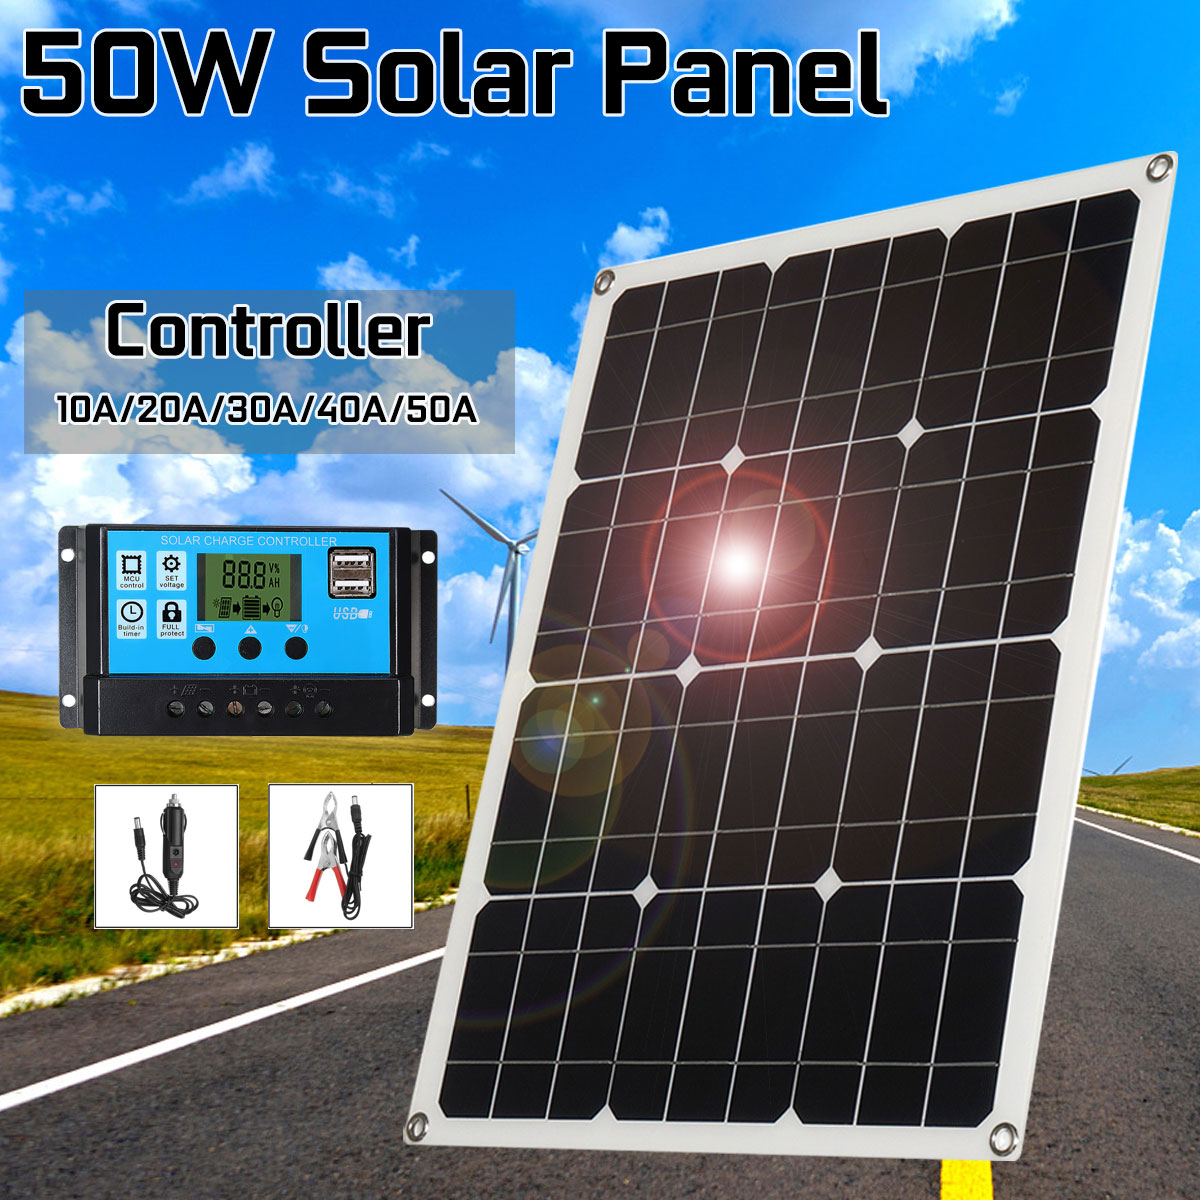 50W double USB Output Solar Panel Solar Cells Poly Solar Panel 10/20/30/40/50A controller for Car Yacht 12V Battery Boat Charger50W double USB Output Solar Panel Solar Cells Poly Solar Panel 10/20/30/40/50A controller for Car Yacht 12V Battery Boat Charger